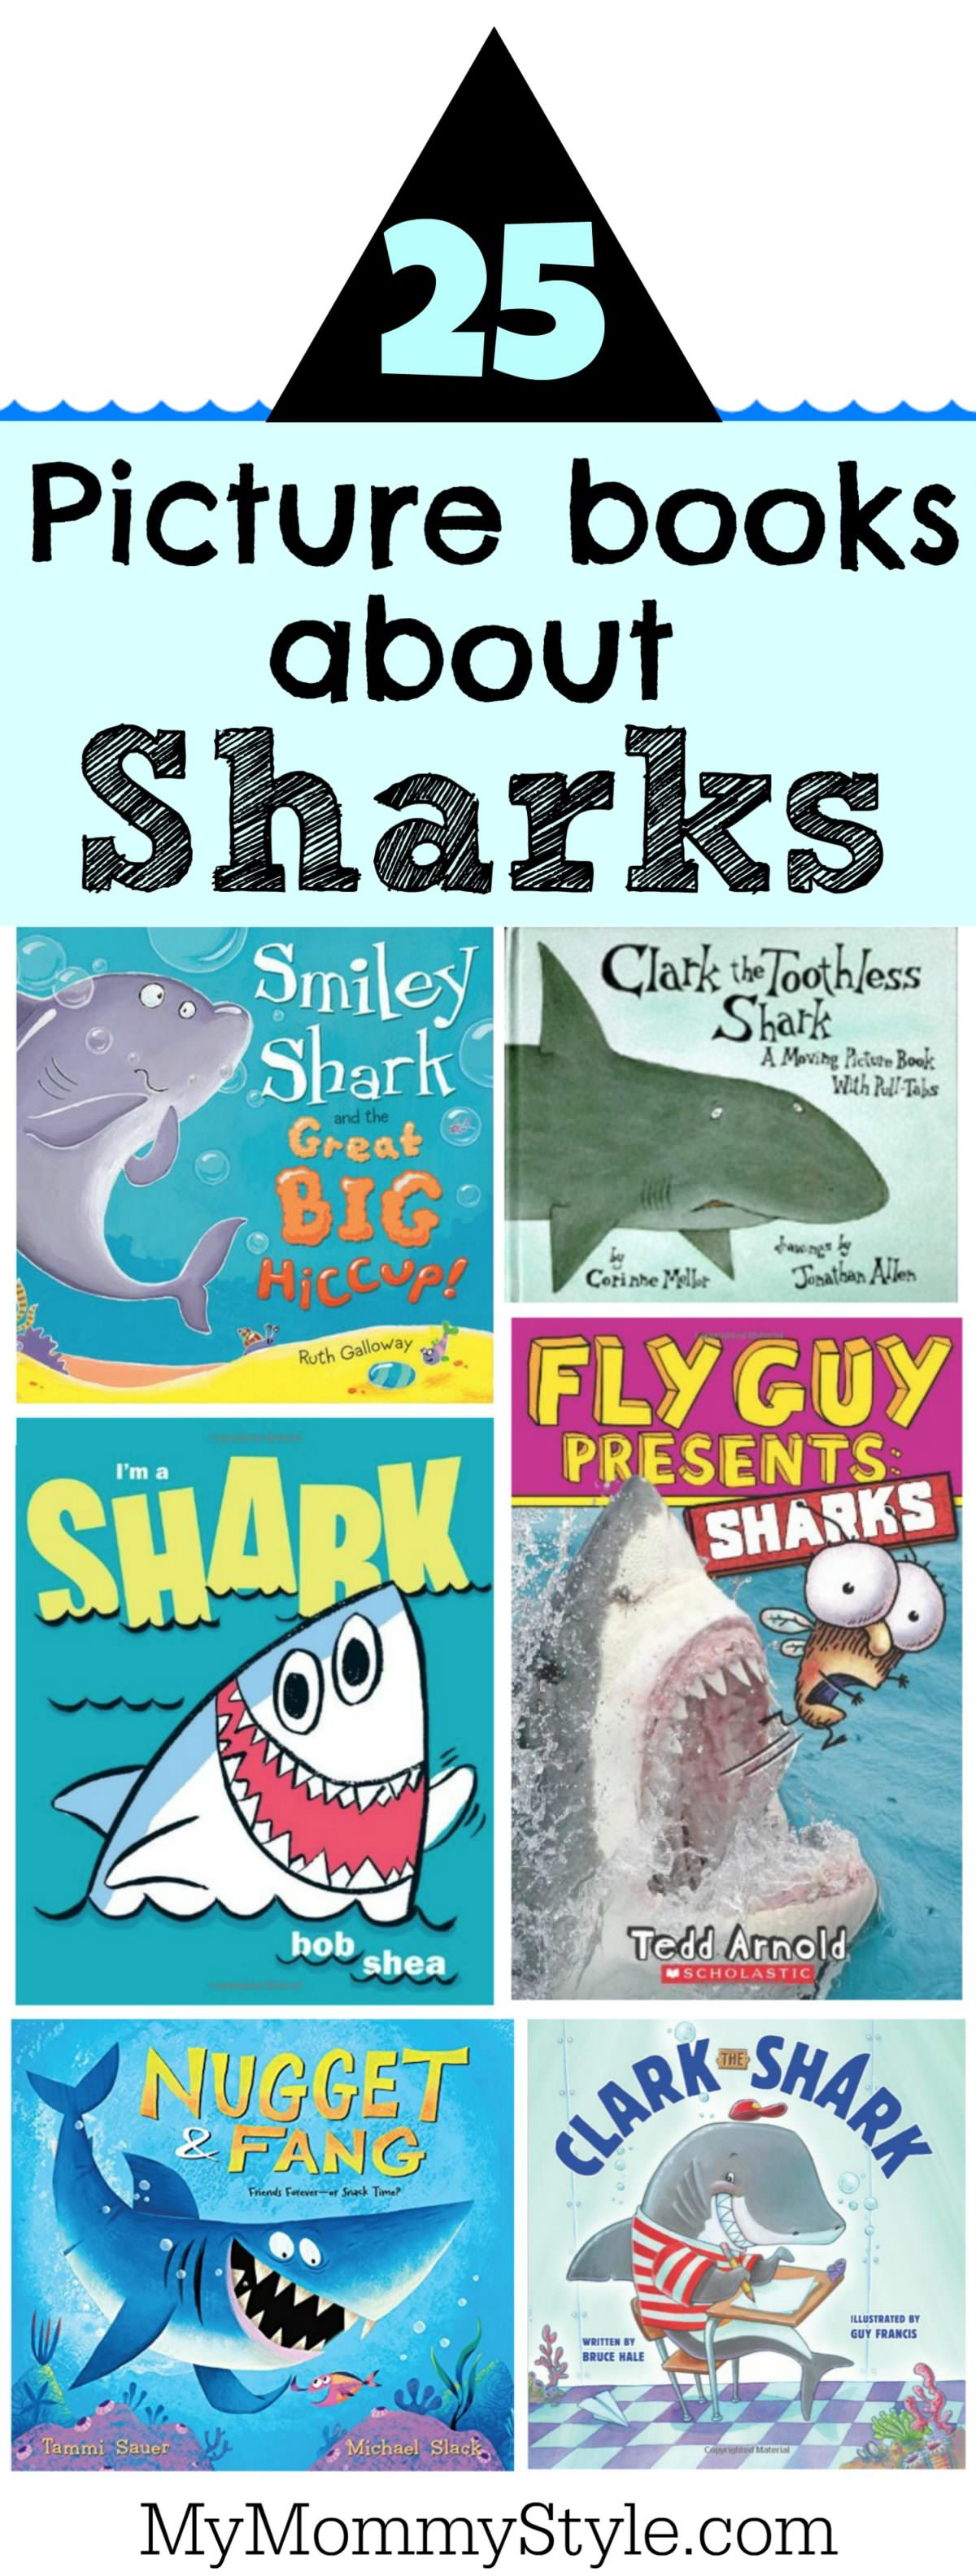 Picture books about sharks for young kids. Books to read during shark week.